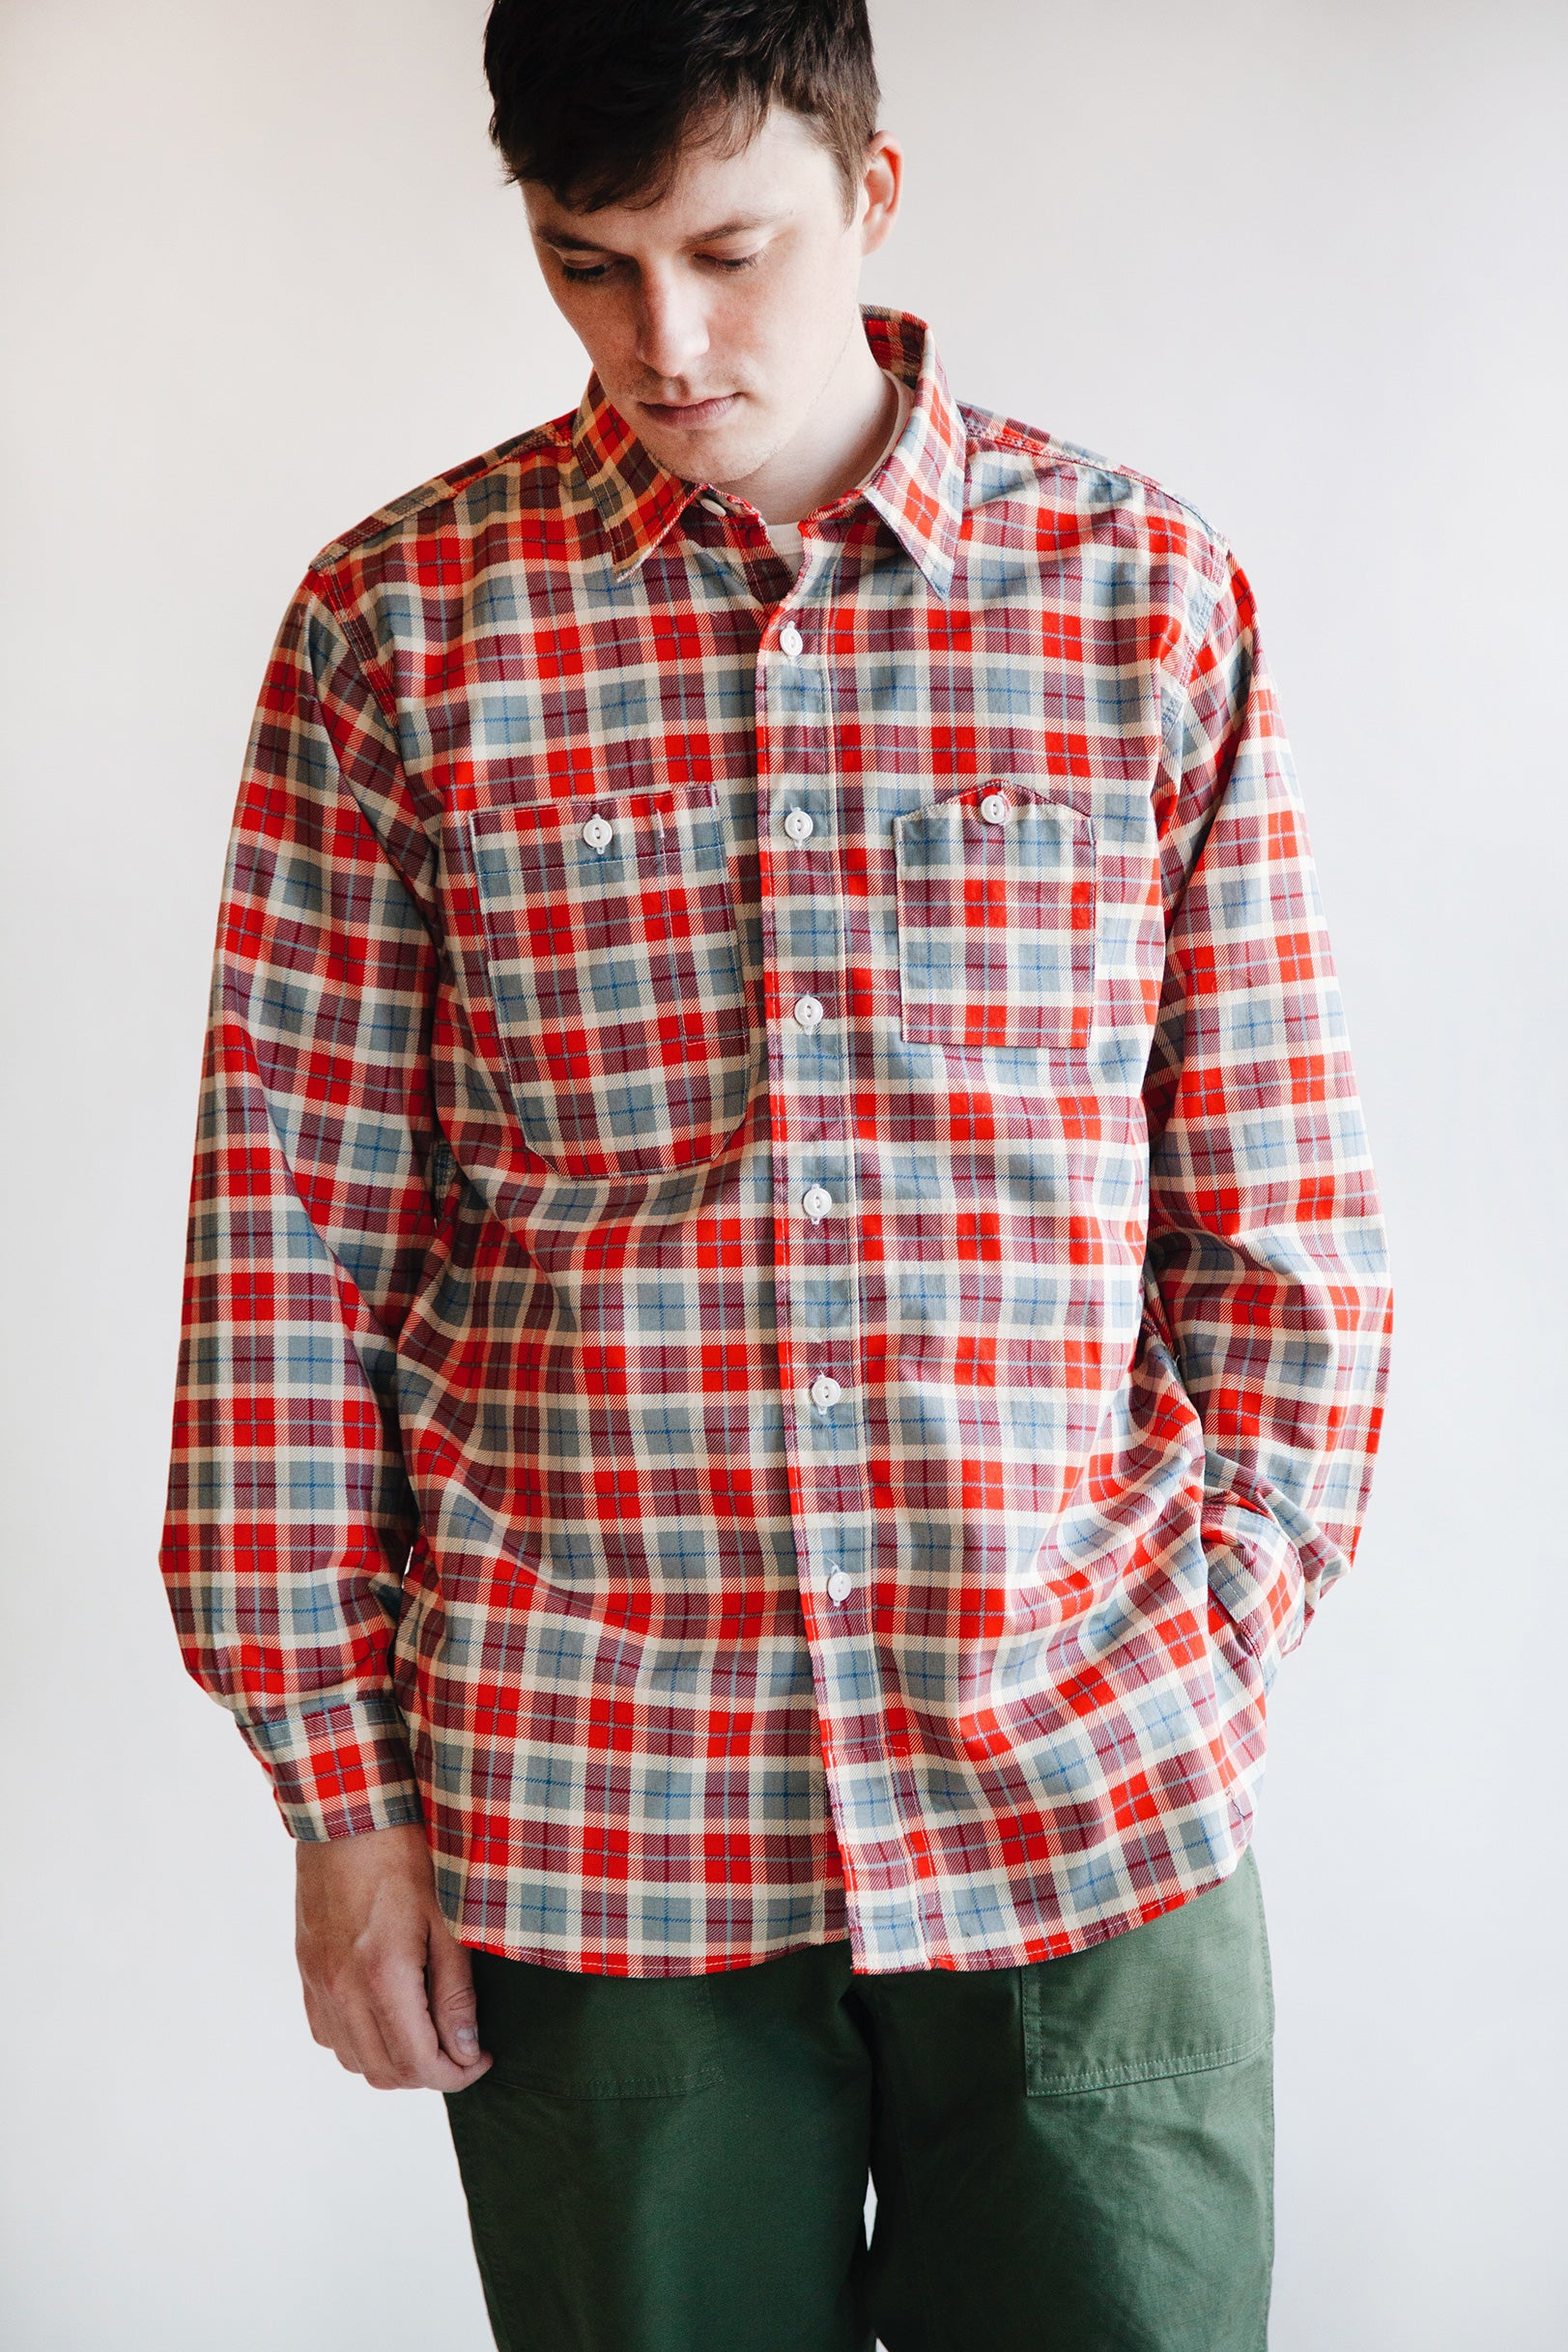 Engineered Garments - Work Shirt - Red/Beige Printed Plaid - Canoe Club